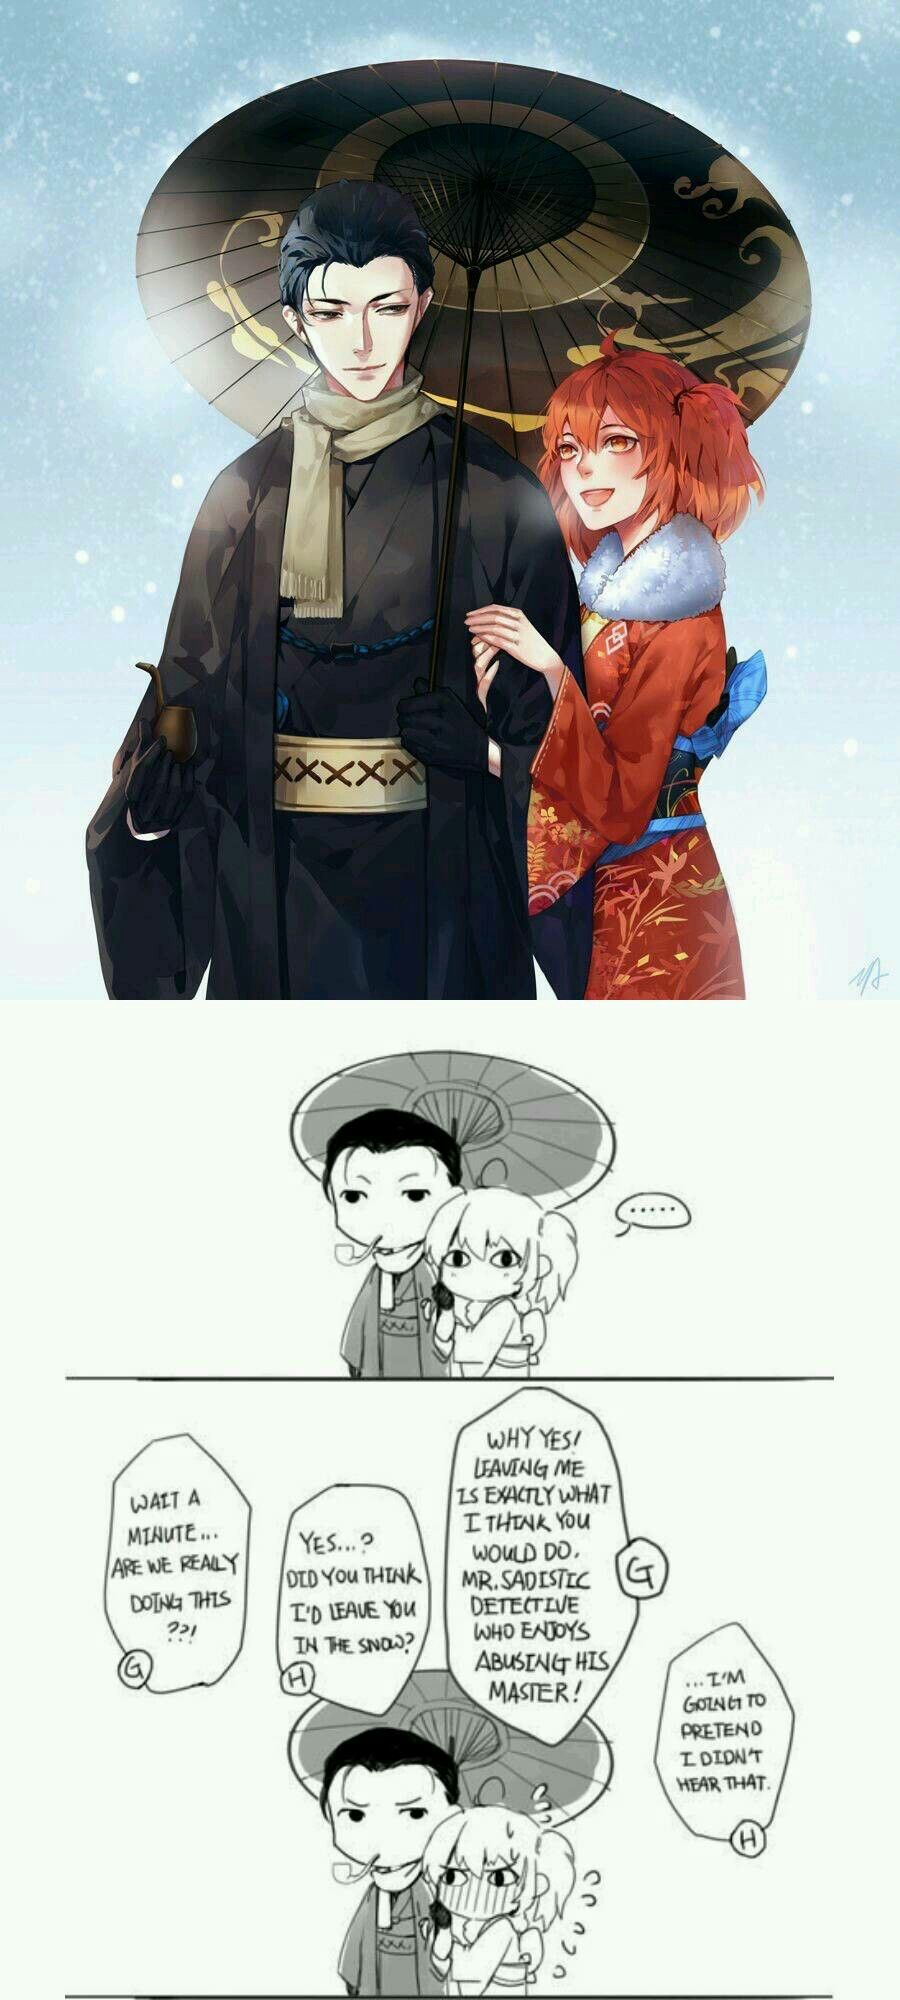 Sherlock and Gudako (With images) Moriarty funny, Fate